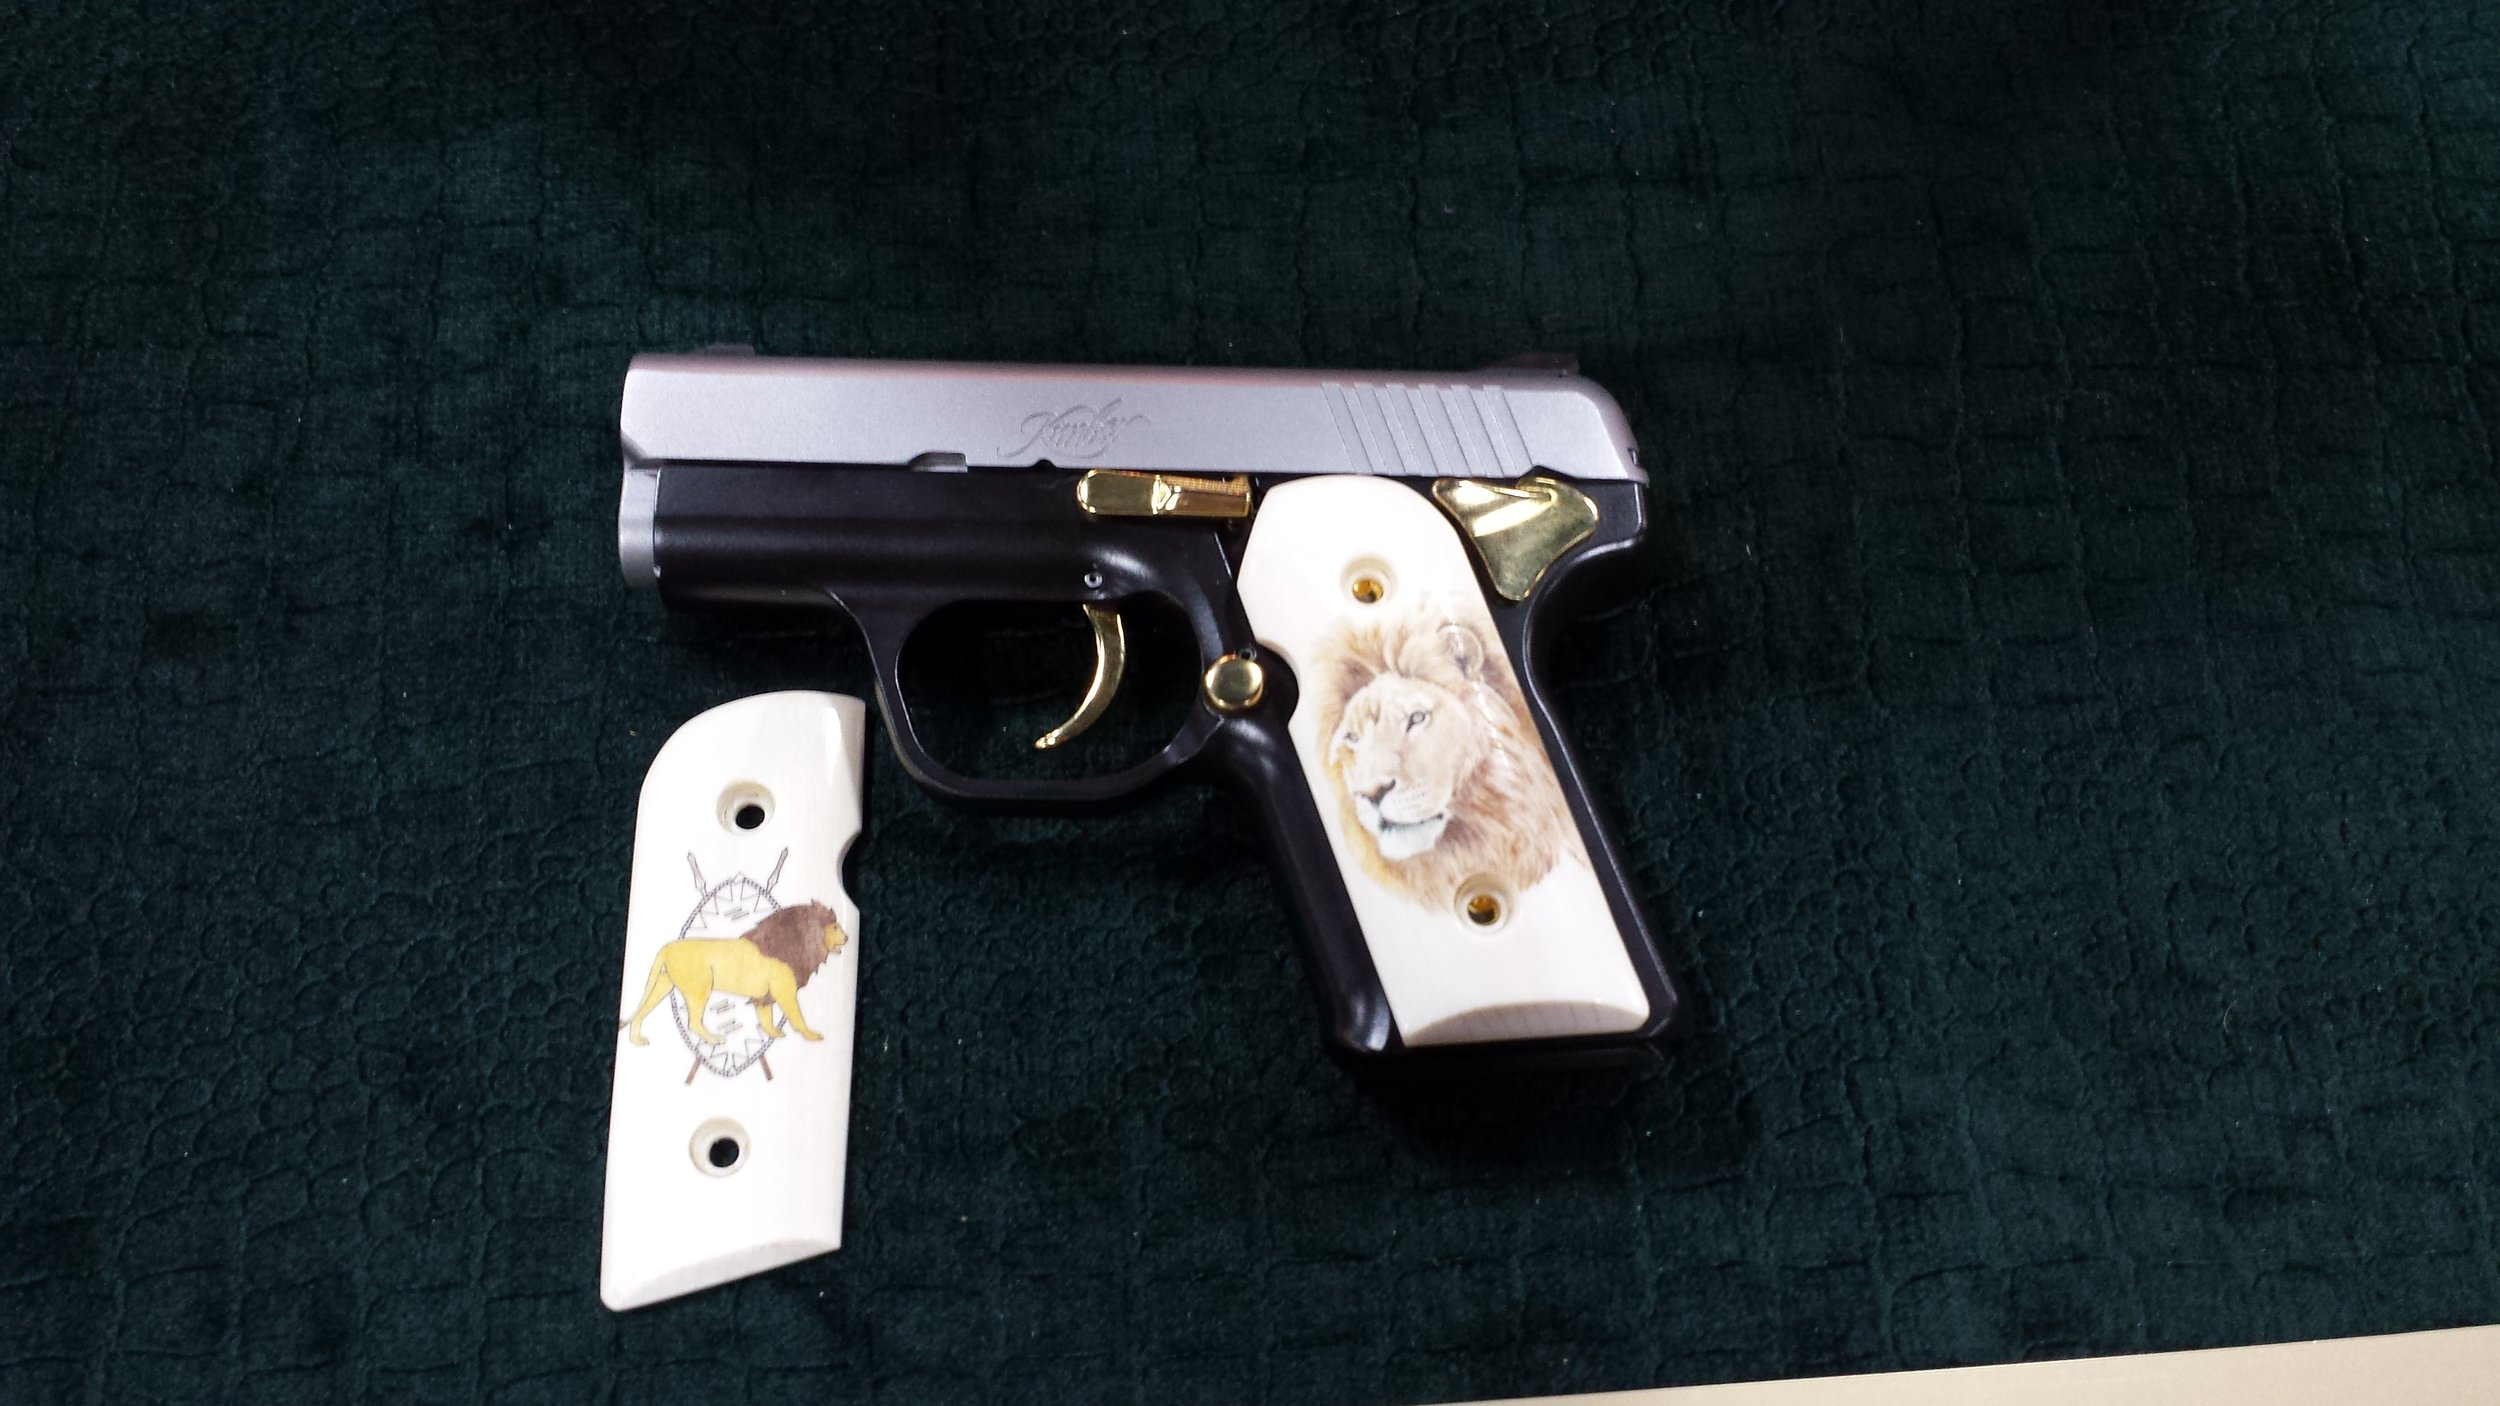 Kimber 9MM pistol with gold inlay REMEMBERING MY FIRST TIME………AT THE SAFARI CLUB INTERNATIONAL LAS VEGAS CONVENTION https://reelcamogirl.wordpress.com/2015/02/17/remembering-my-first-time-at-the-safari-club-international-las-vegas-convention/